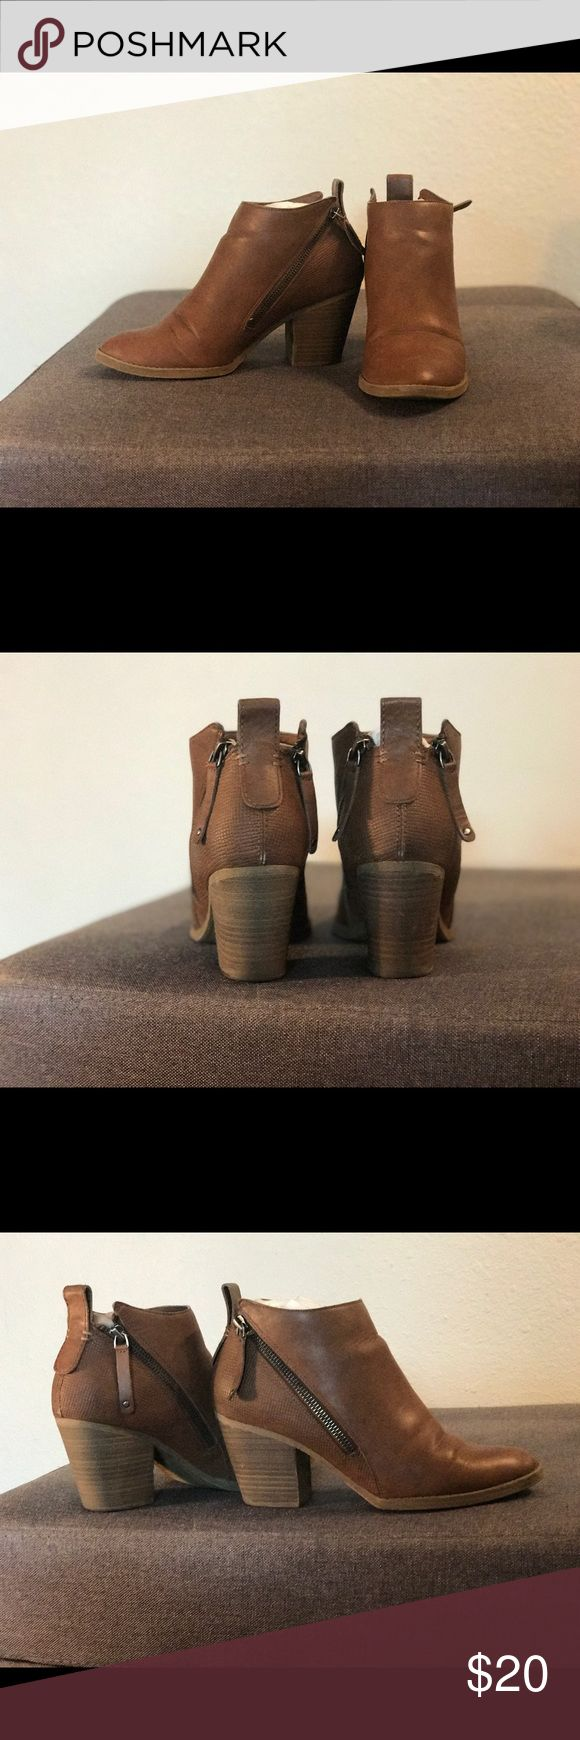 Tan Leather Ankle Booties Size 8 Shoes Ankle Boots & Booties